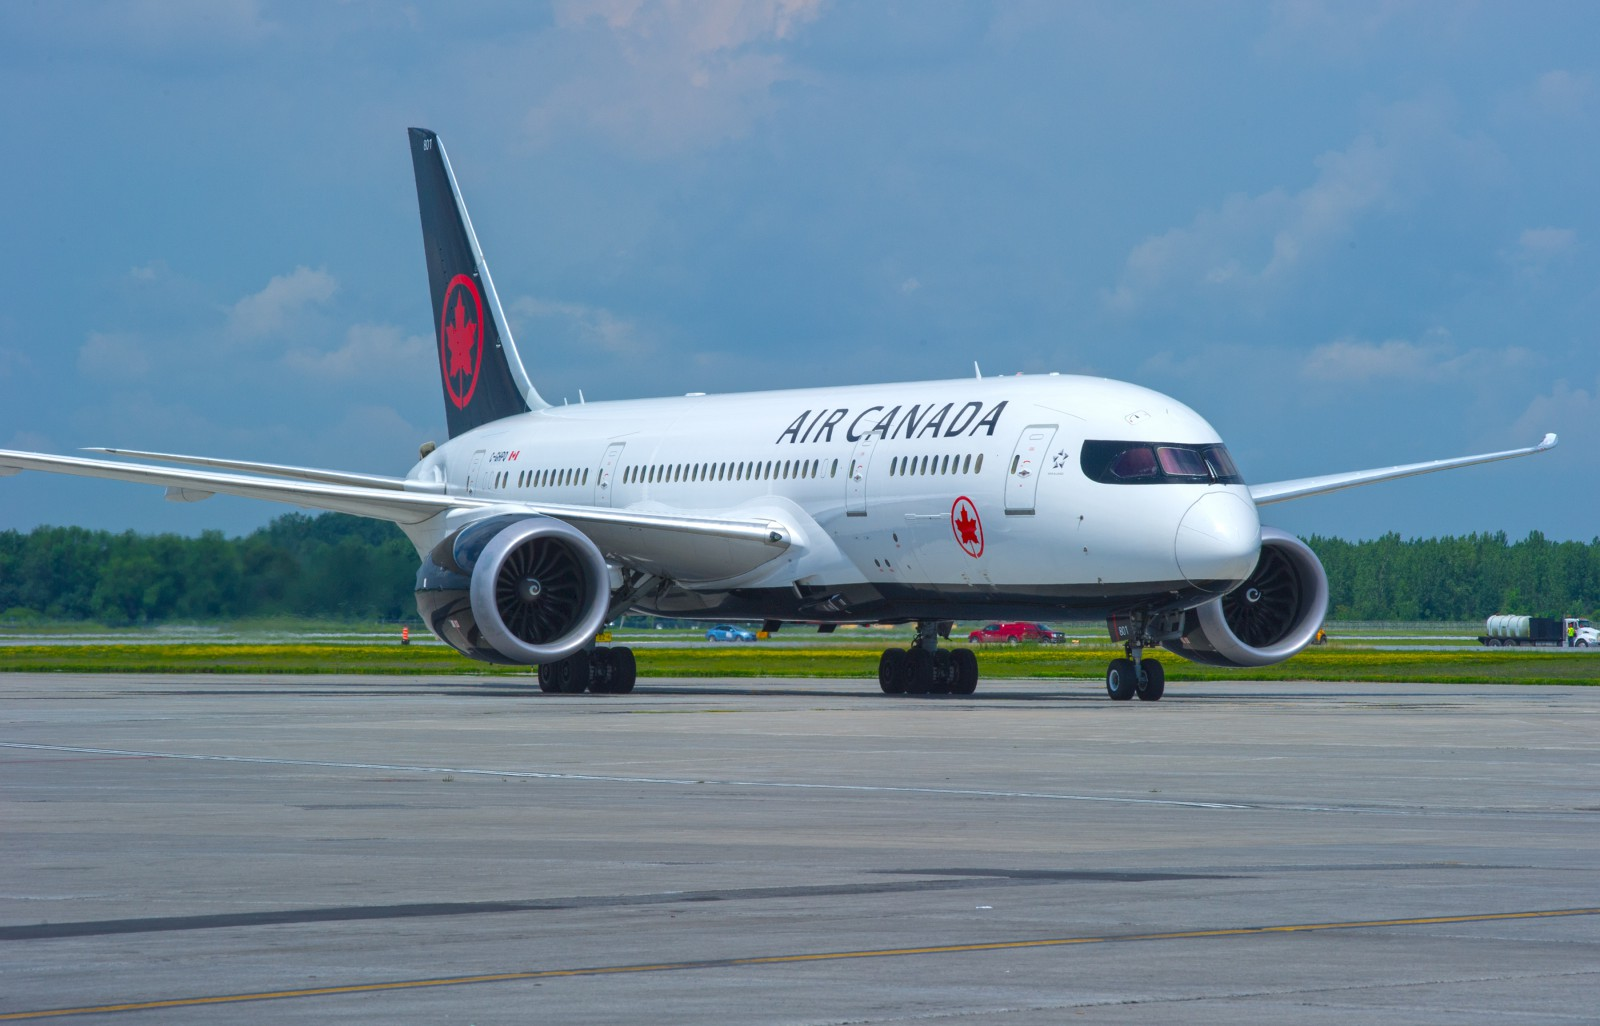 Air Canada aeroplan regulatory approval